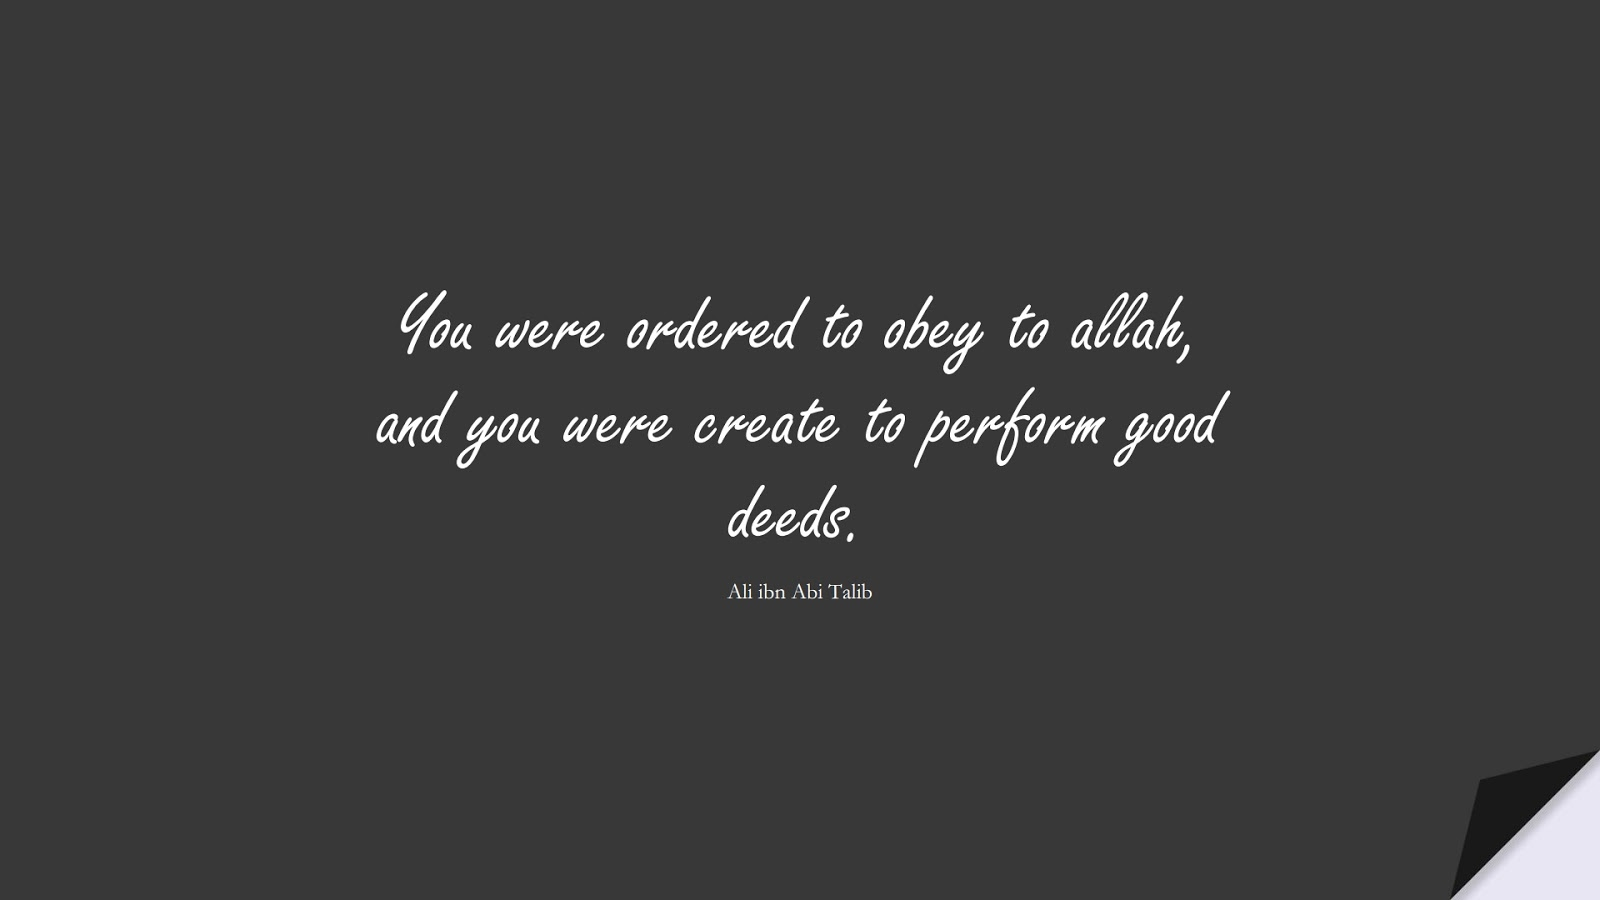 You were ordered to obey to allah, and you were create to perform good deeds. (Ali ibn Abi Talib);  #AliQuotes